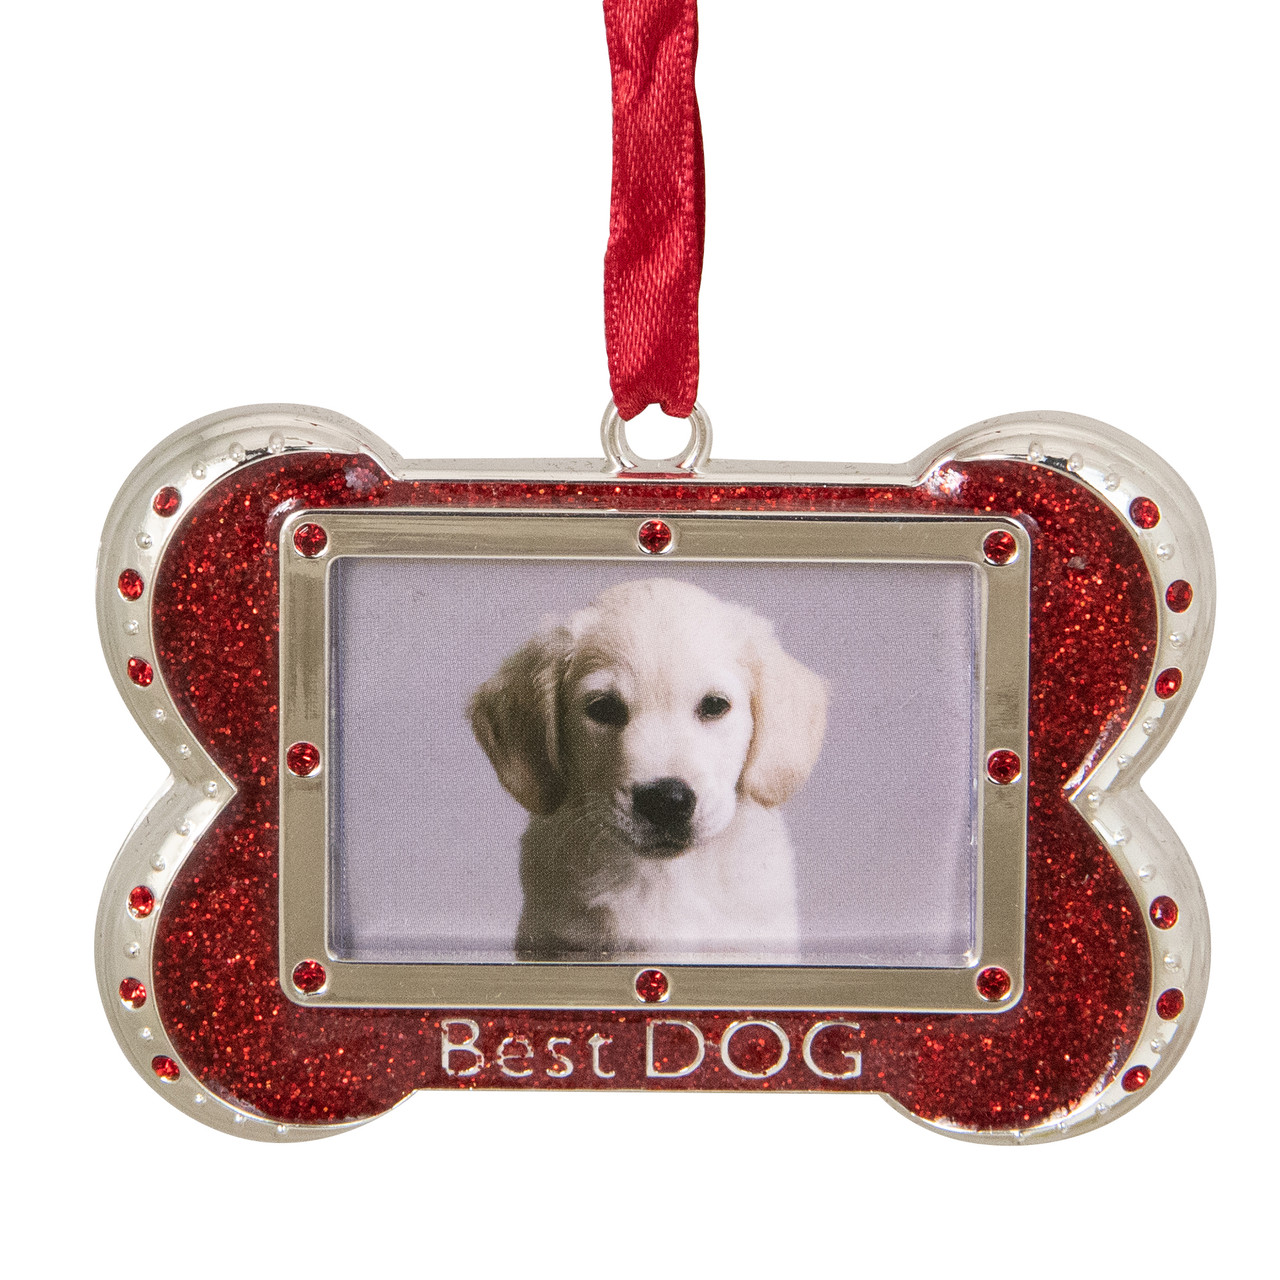 3 Regal Shiny Silver Plated Red Best Dog Bone Picture Ornament With European Crystals Christmas Central